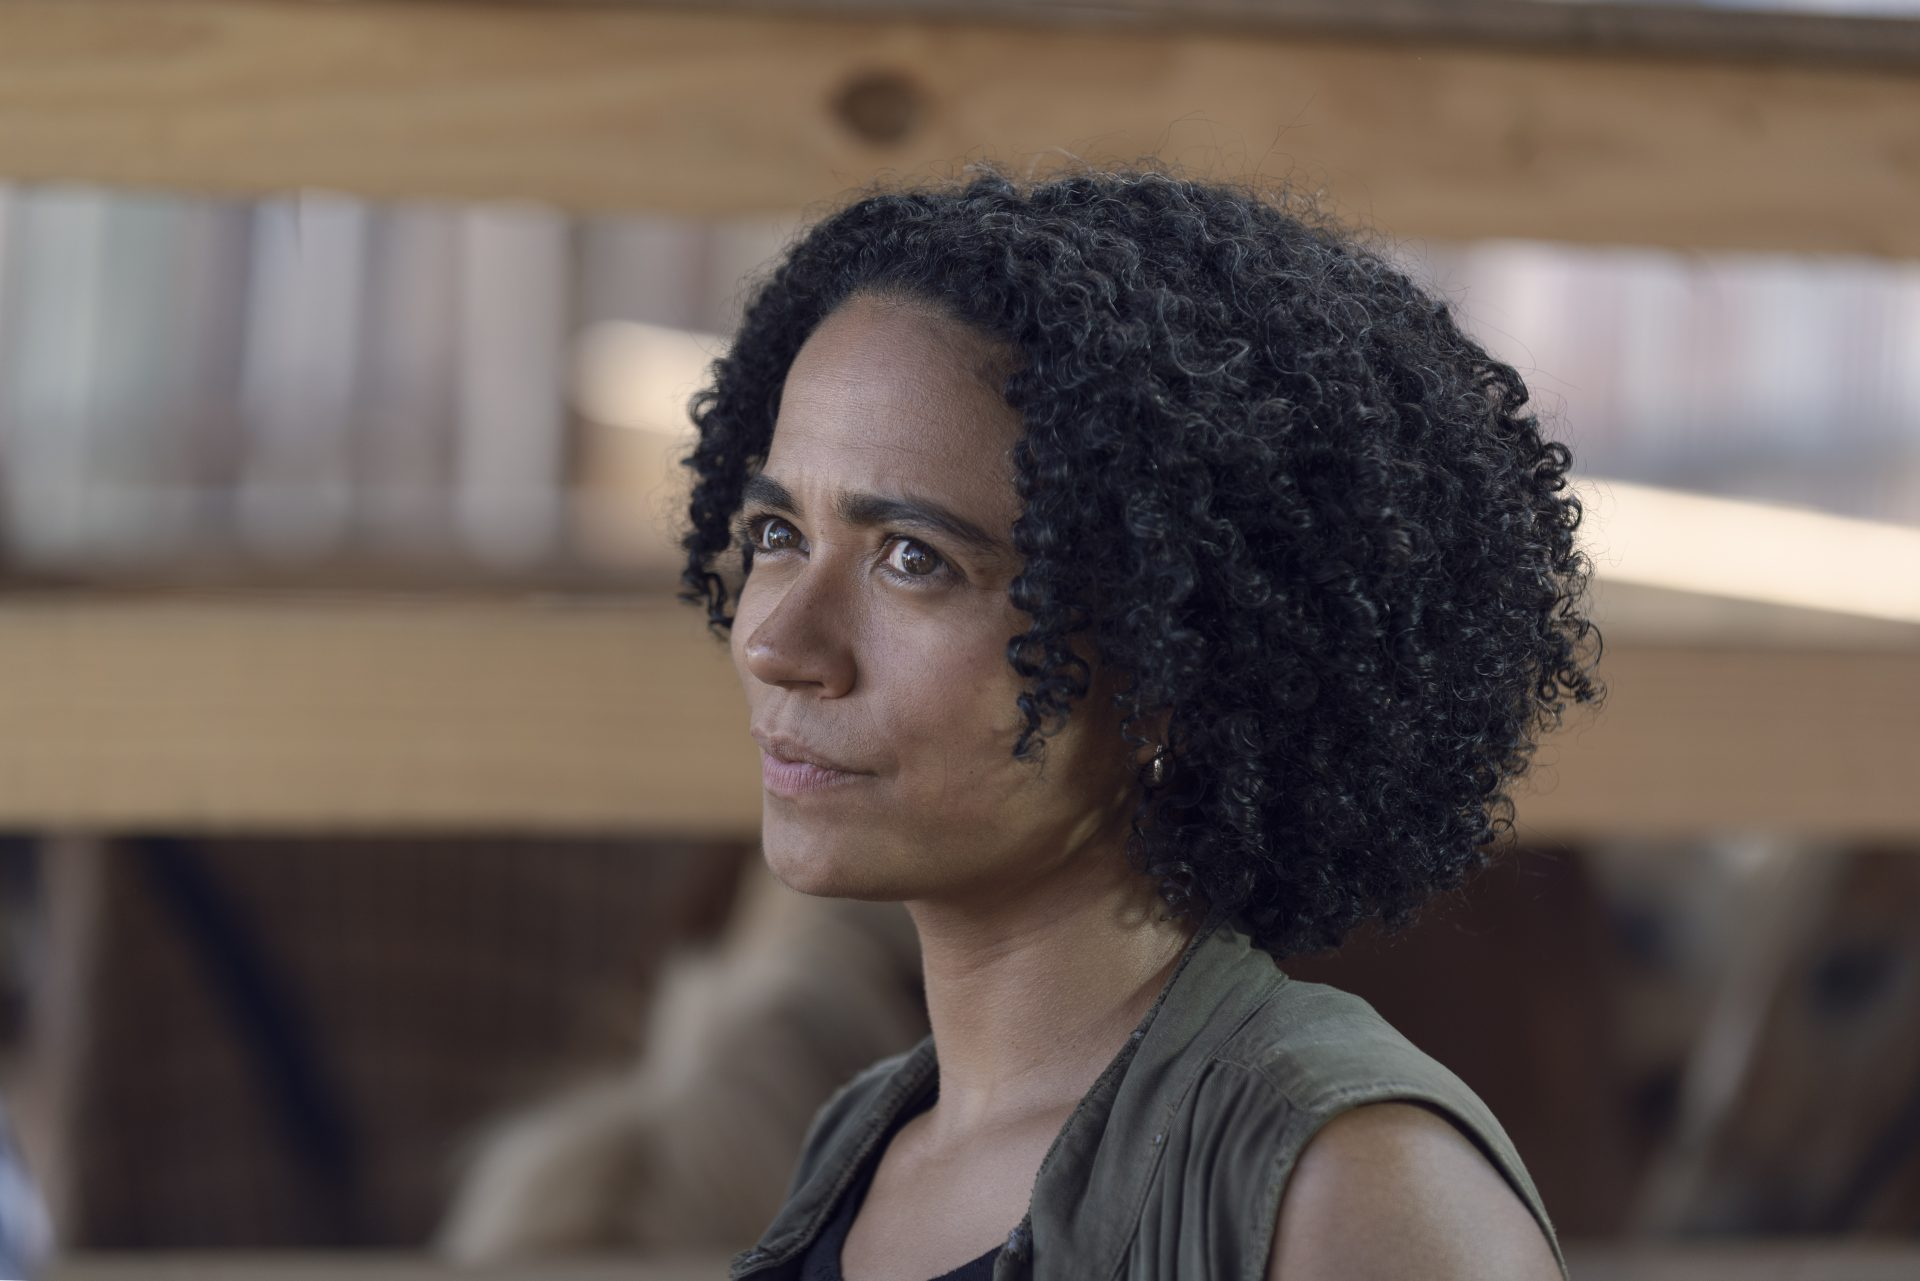 The Walking Dead character Connie stares off camera